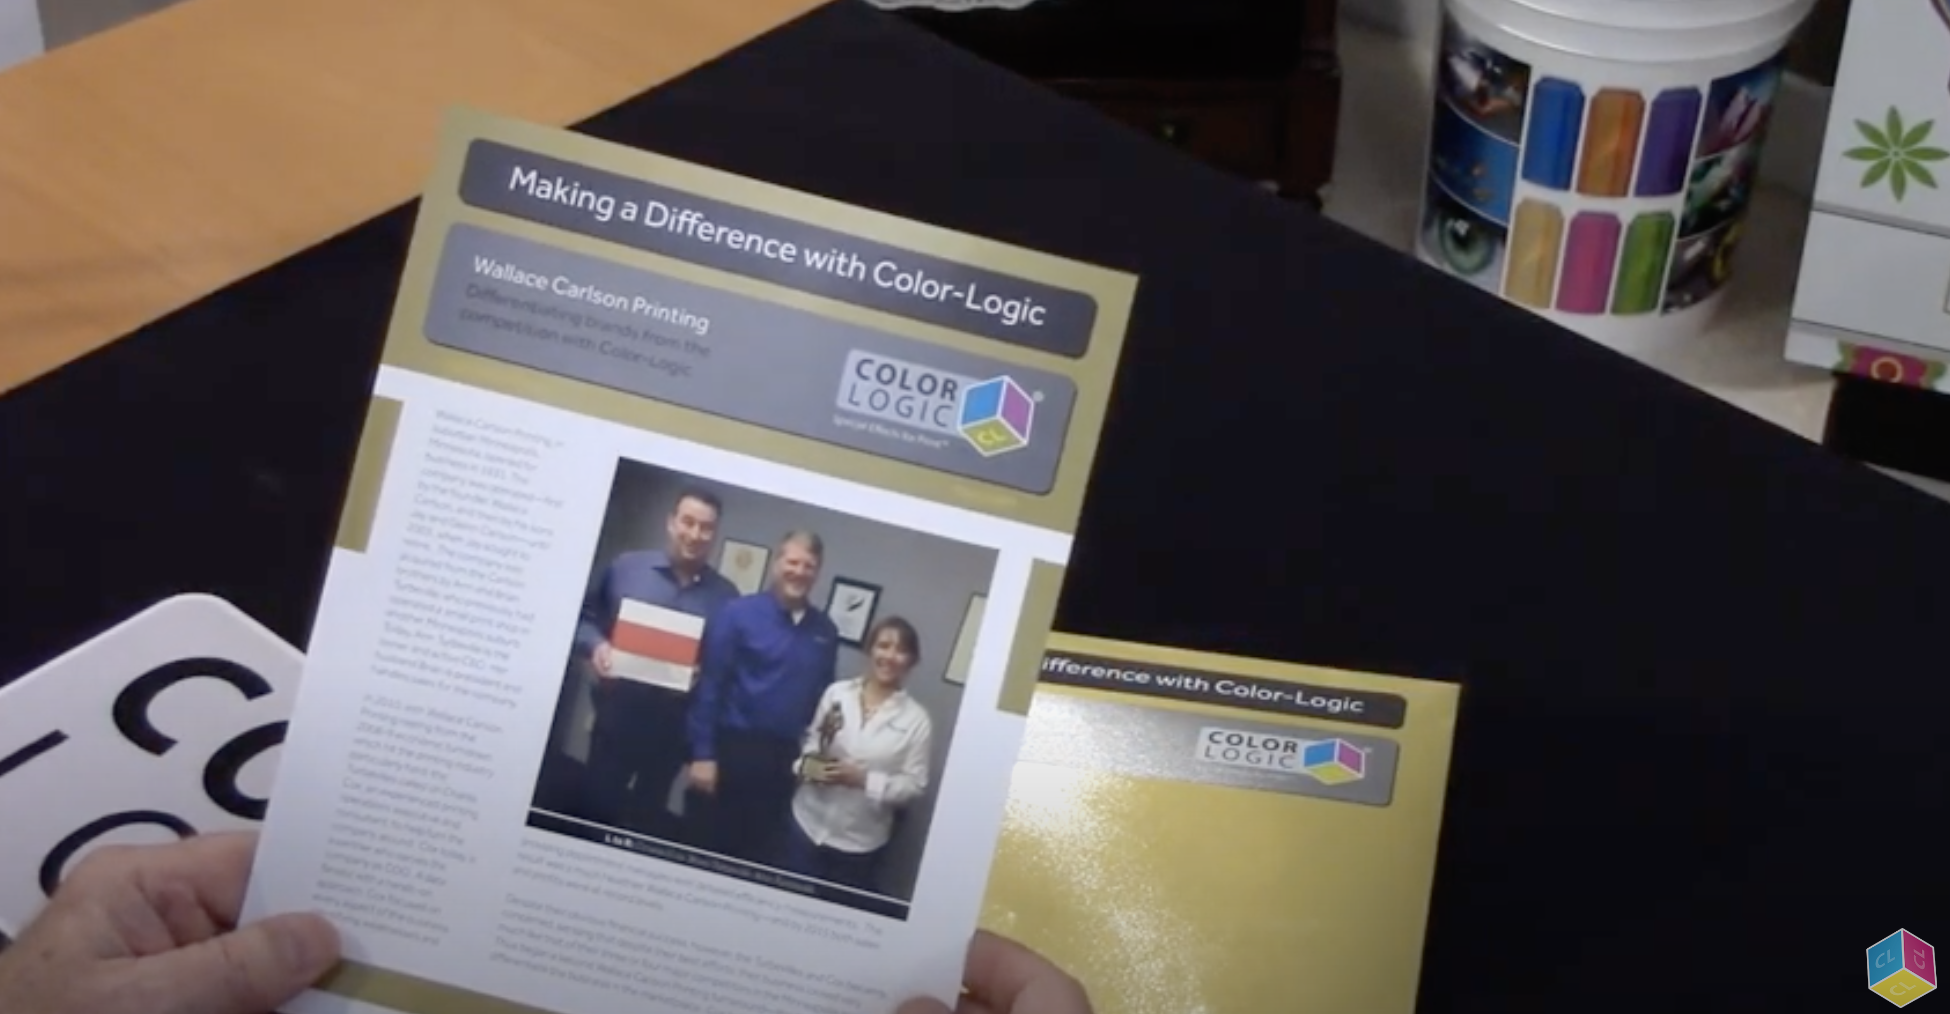 WCP making a difference with Color-Logic!